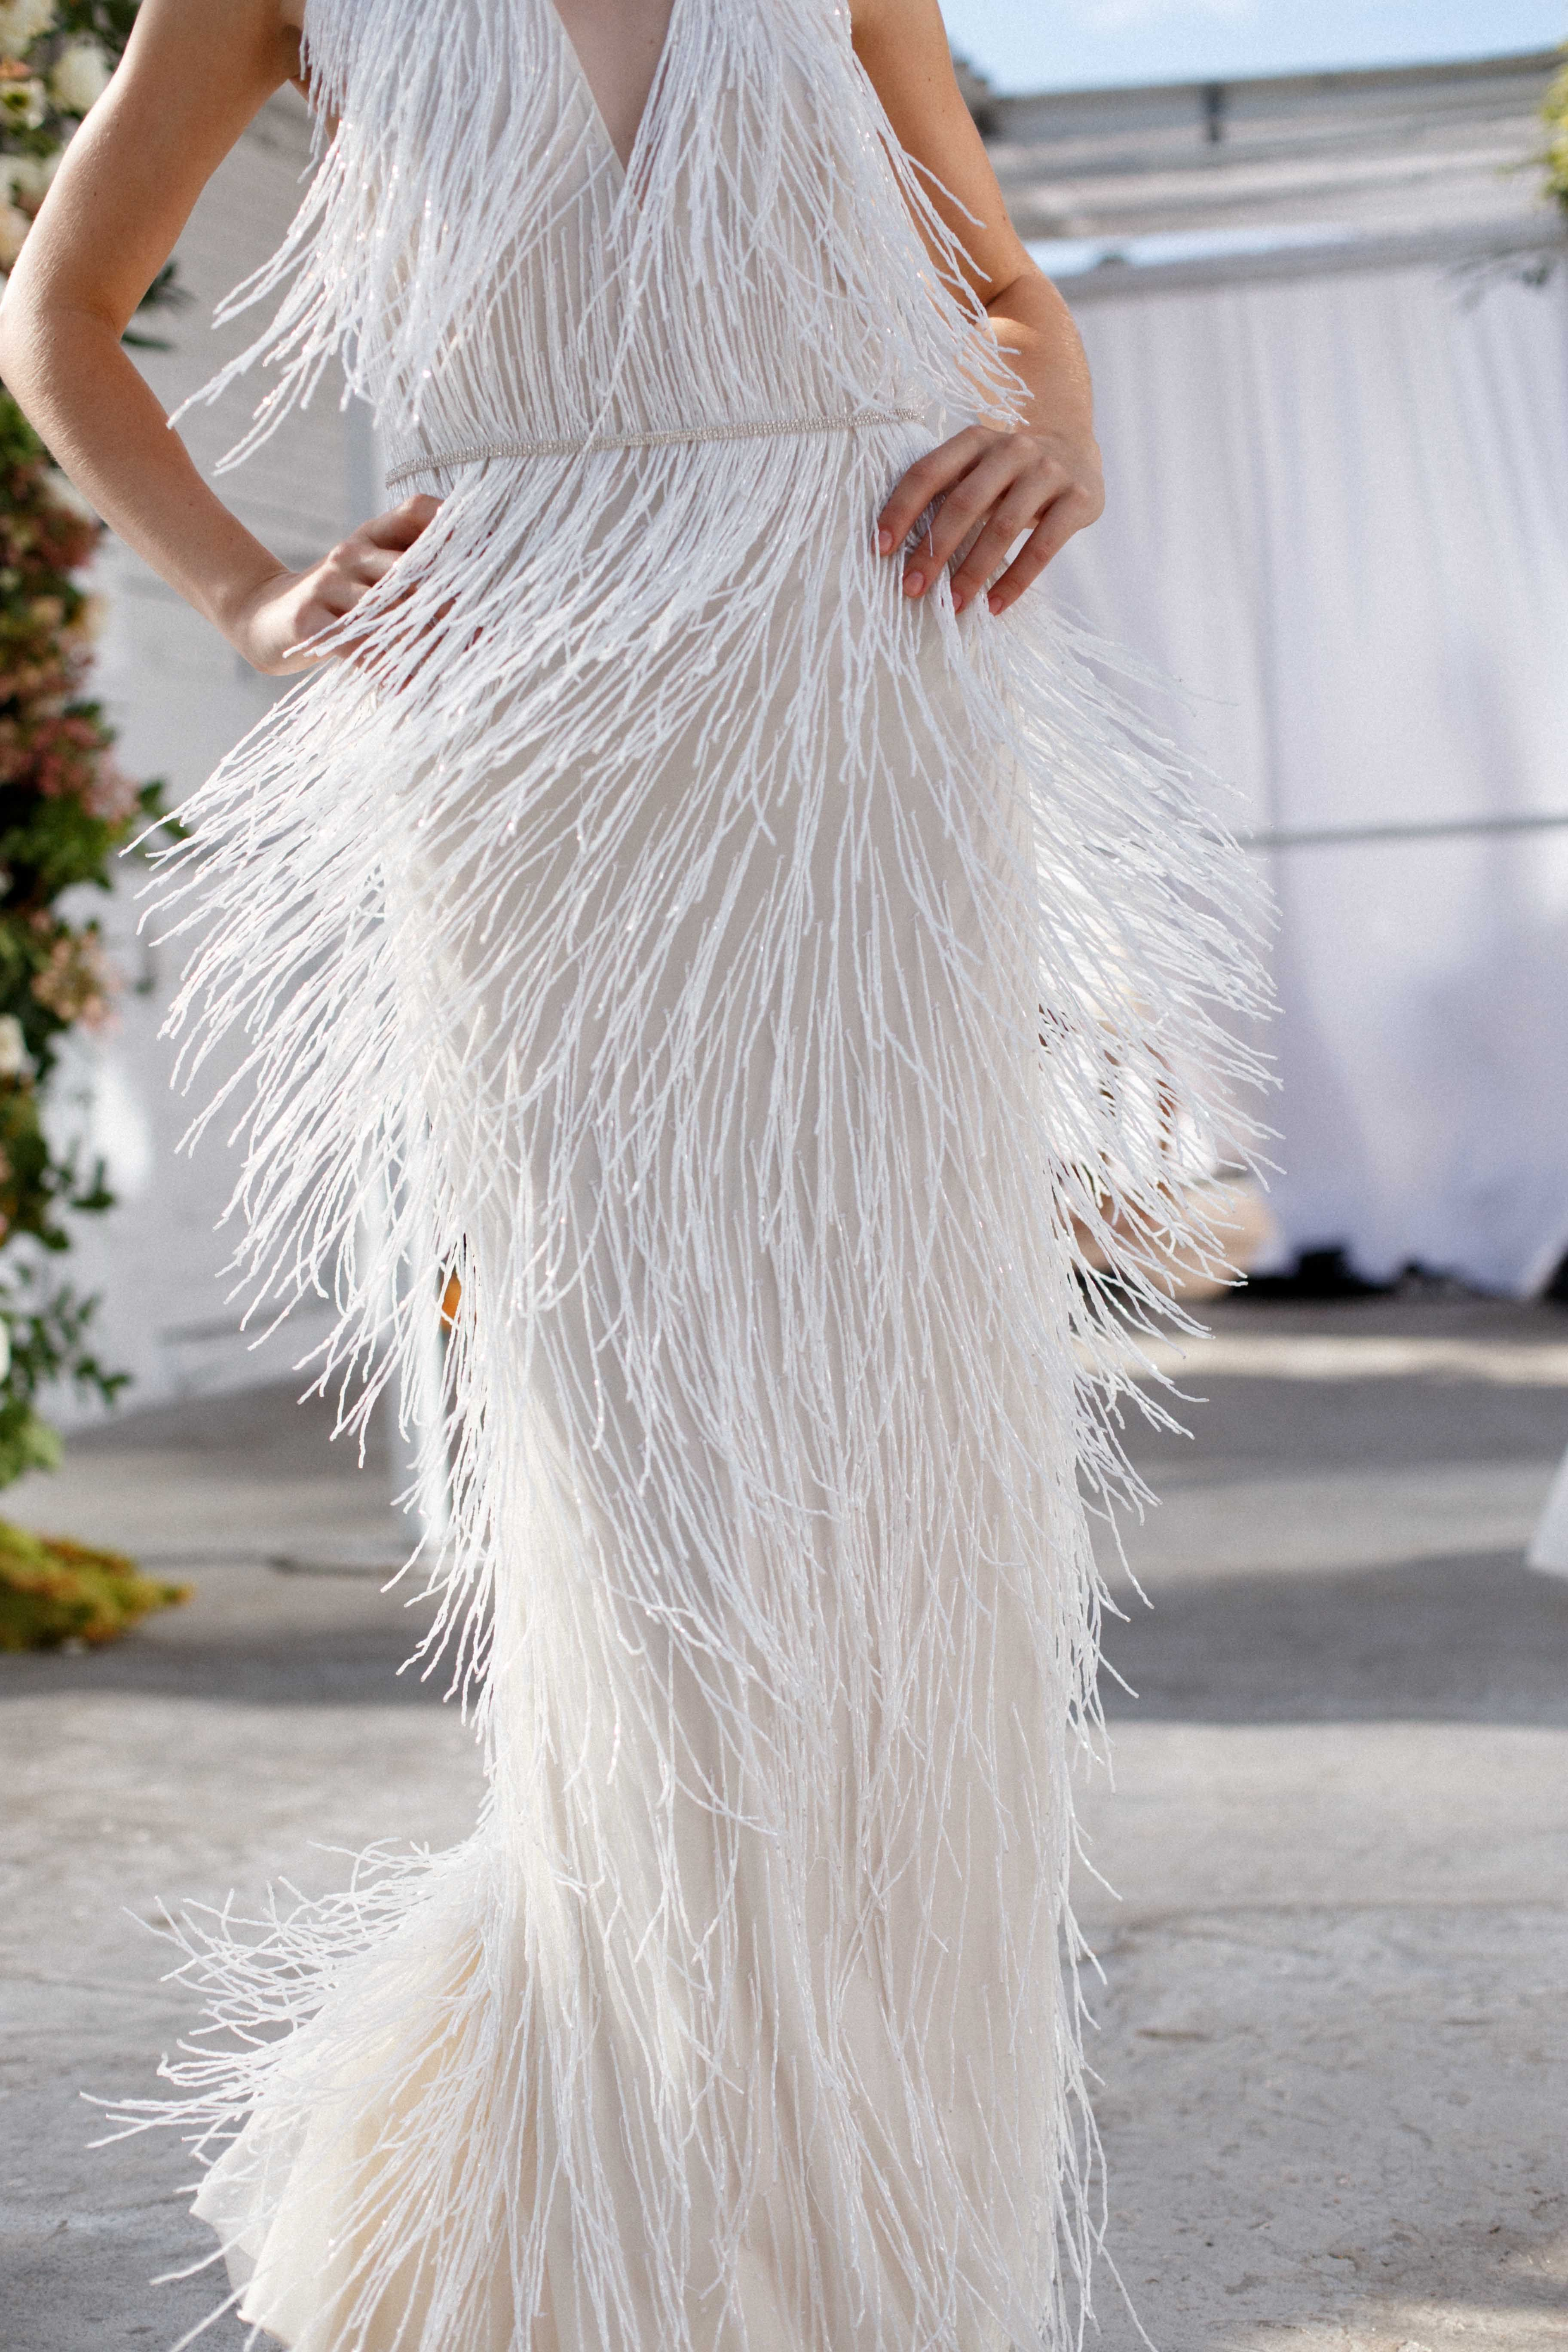 Jenny Yoo Collection The Etra Bridal Gown Features Delicate Beaded Fringe That Creates Sparklin Cocktail Dress Wedding Fringe Wedding Dress Glam Wedding Dress [ 5472 x 3648 Pixel ]